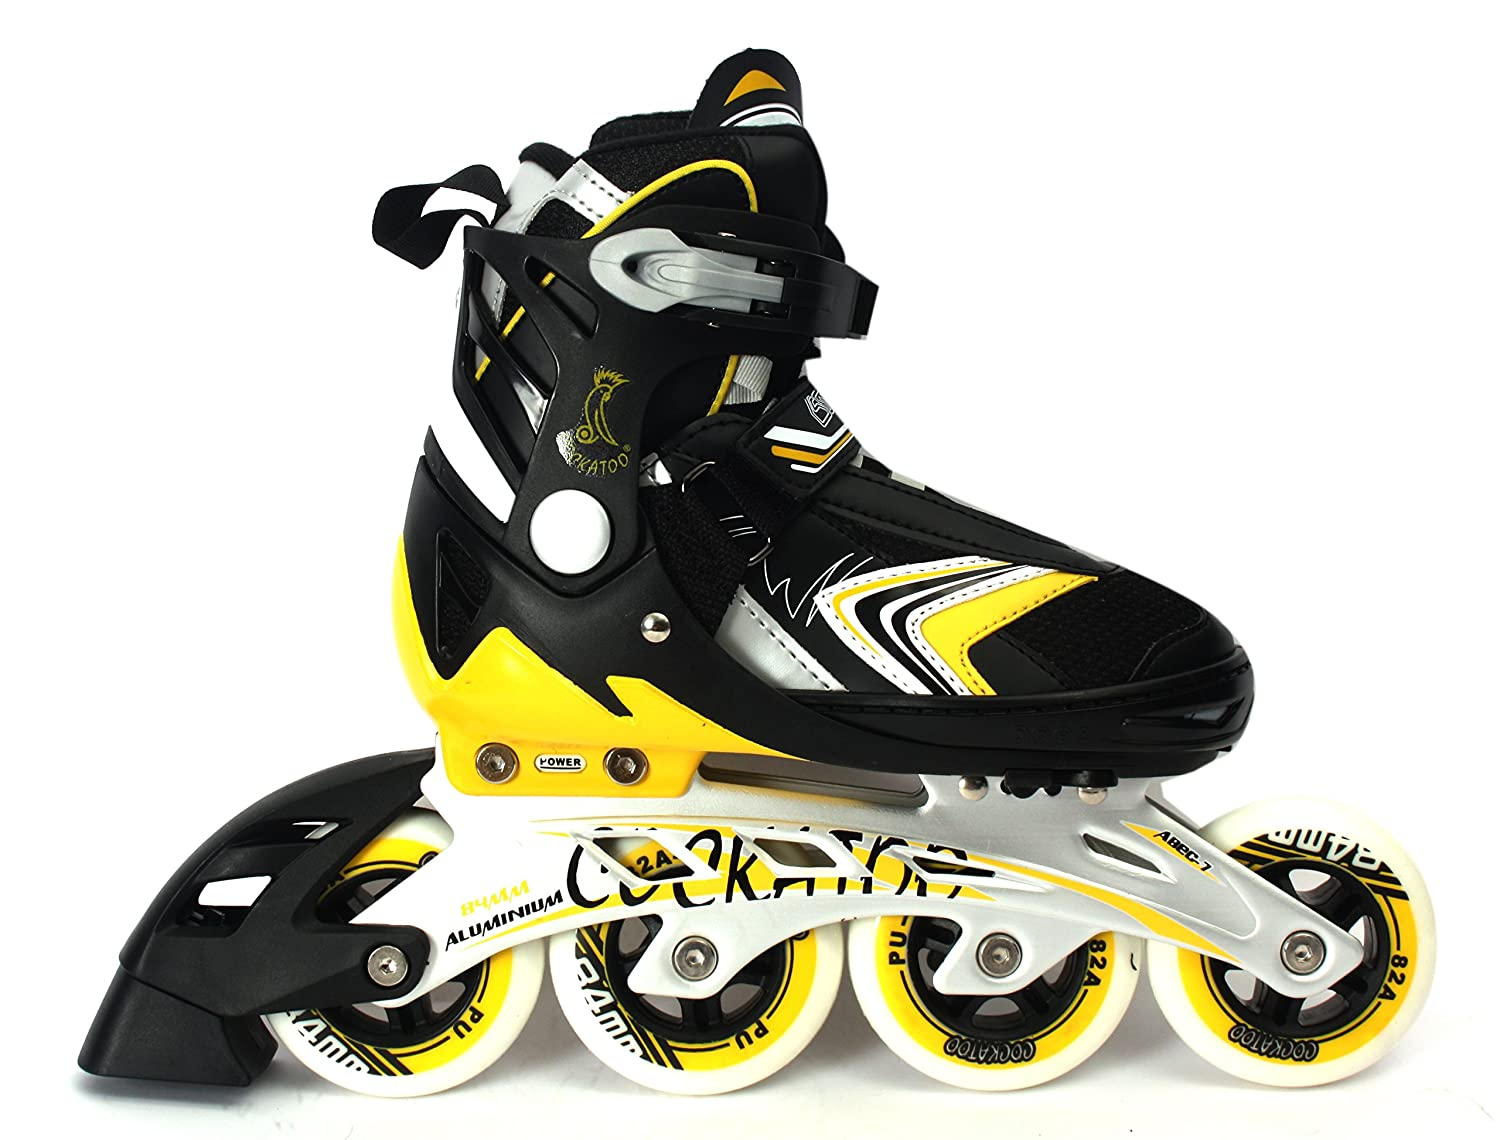 Roller skating shoes in chennai - Buy Cockatoo Abec 7 Inline Adjustable Skates Is05 90 Mm Wheel Black Yellow Large Online At Low Prices In India Amazon In